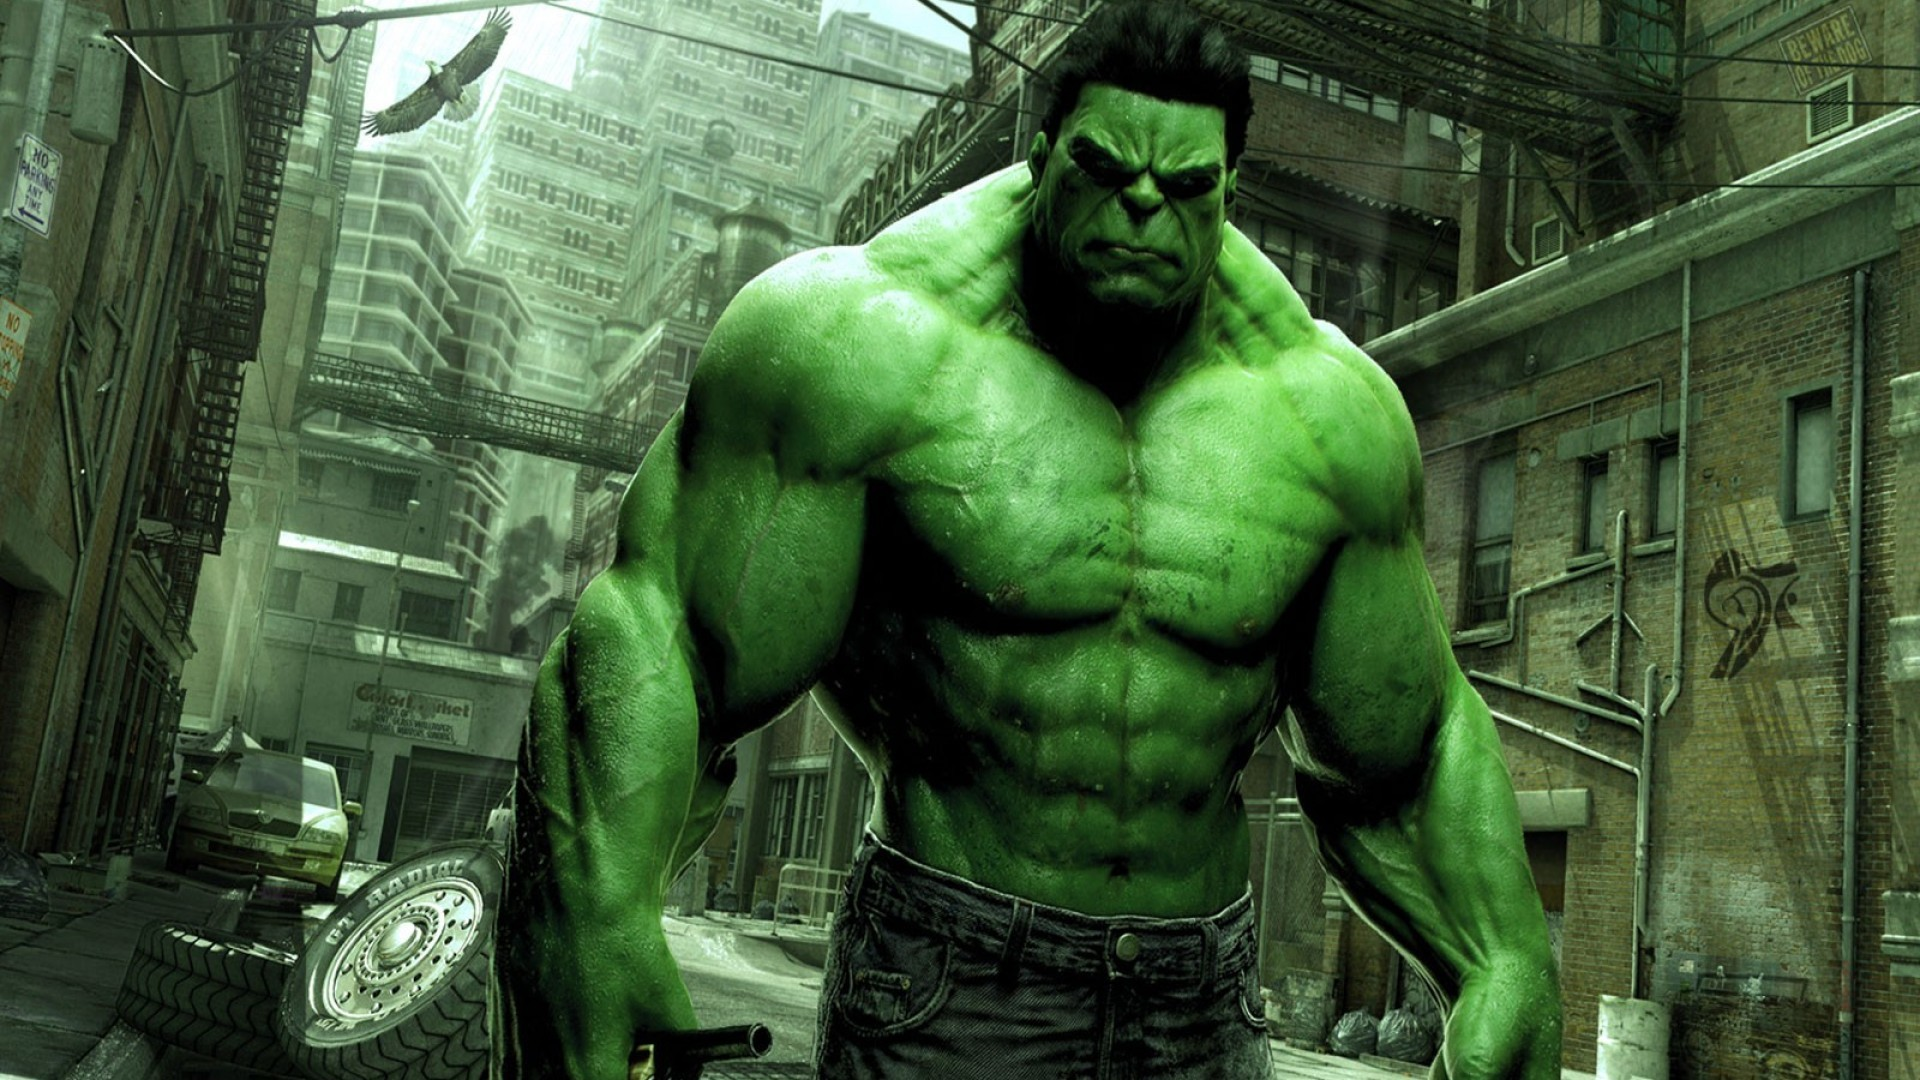 the hulk wallpaper (64+ images)